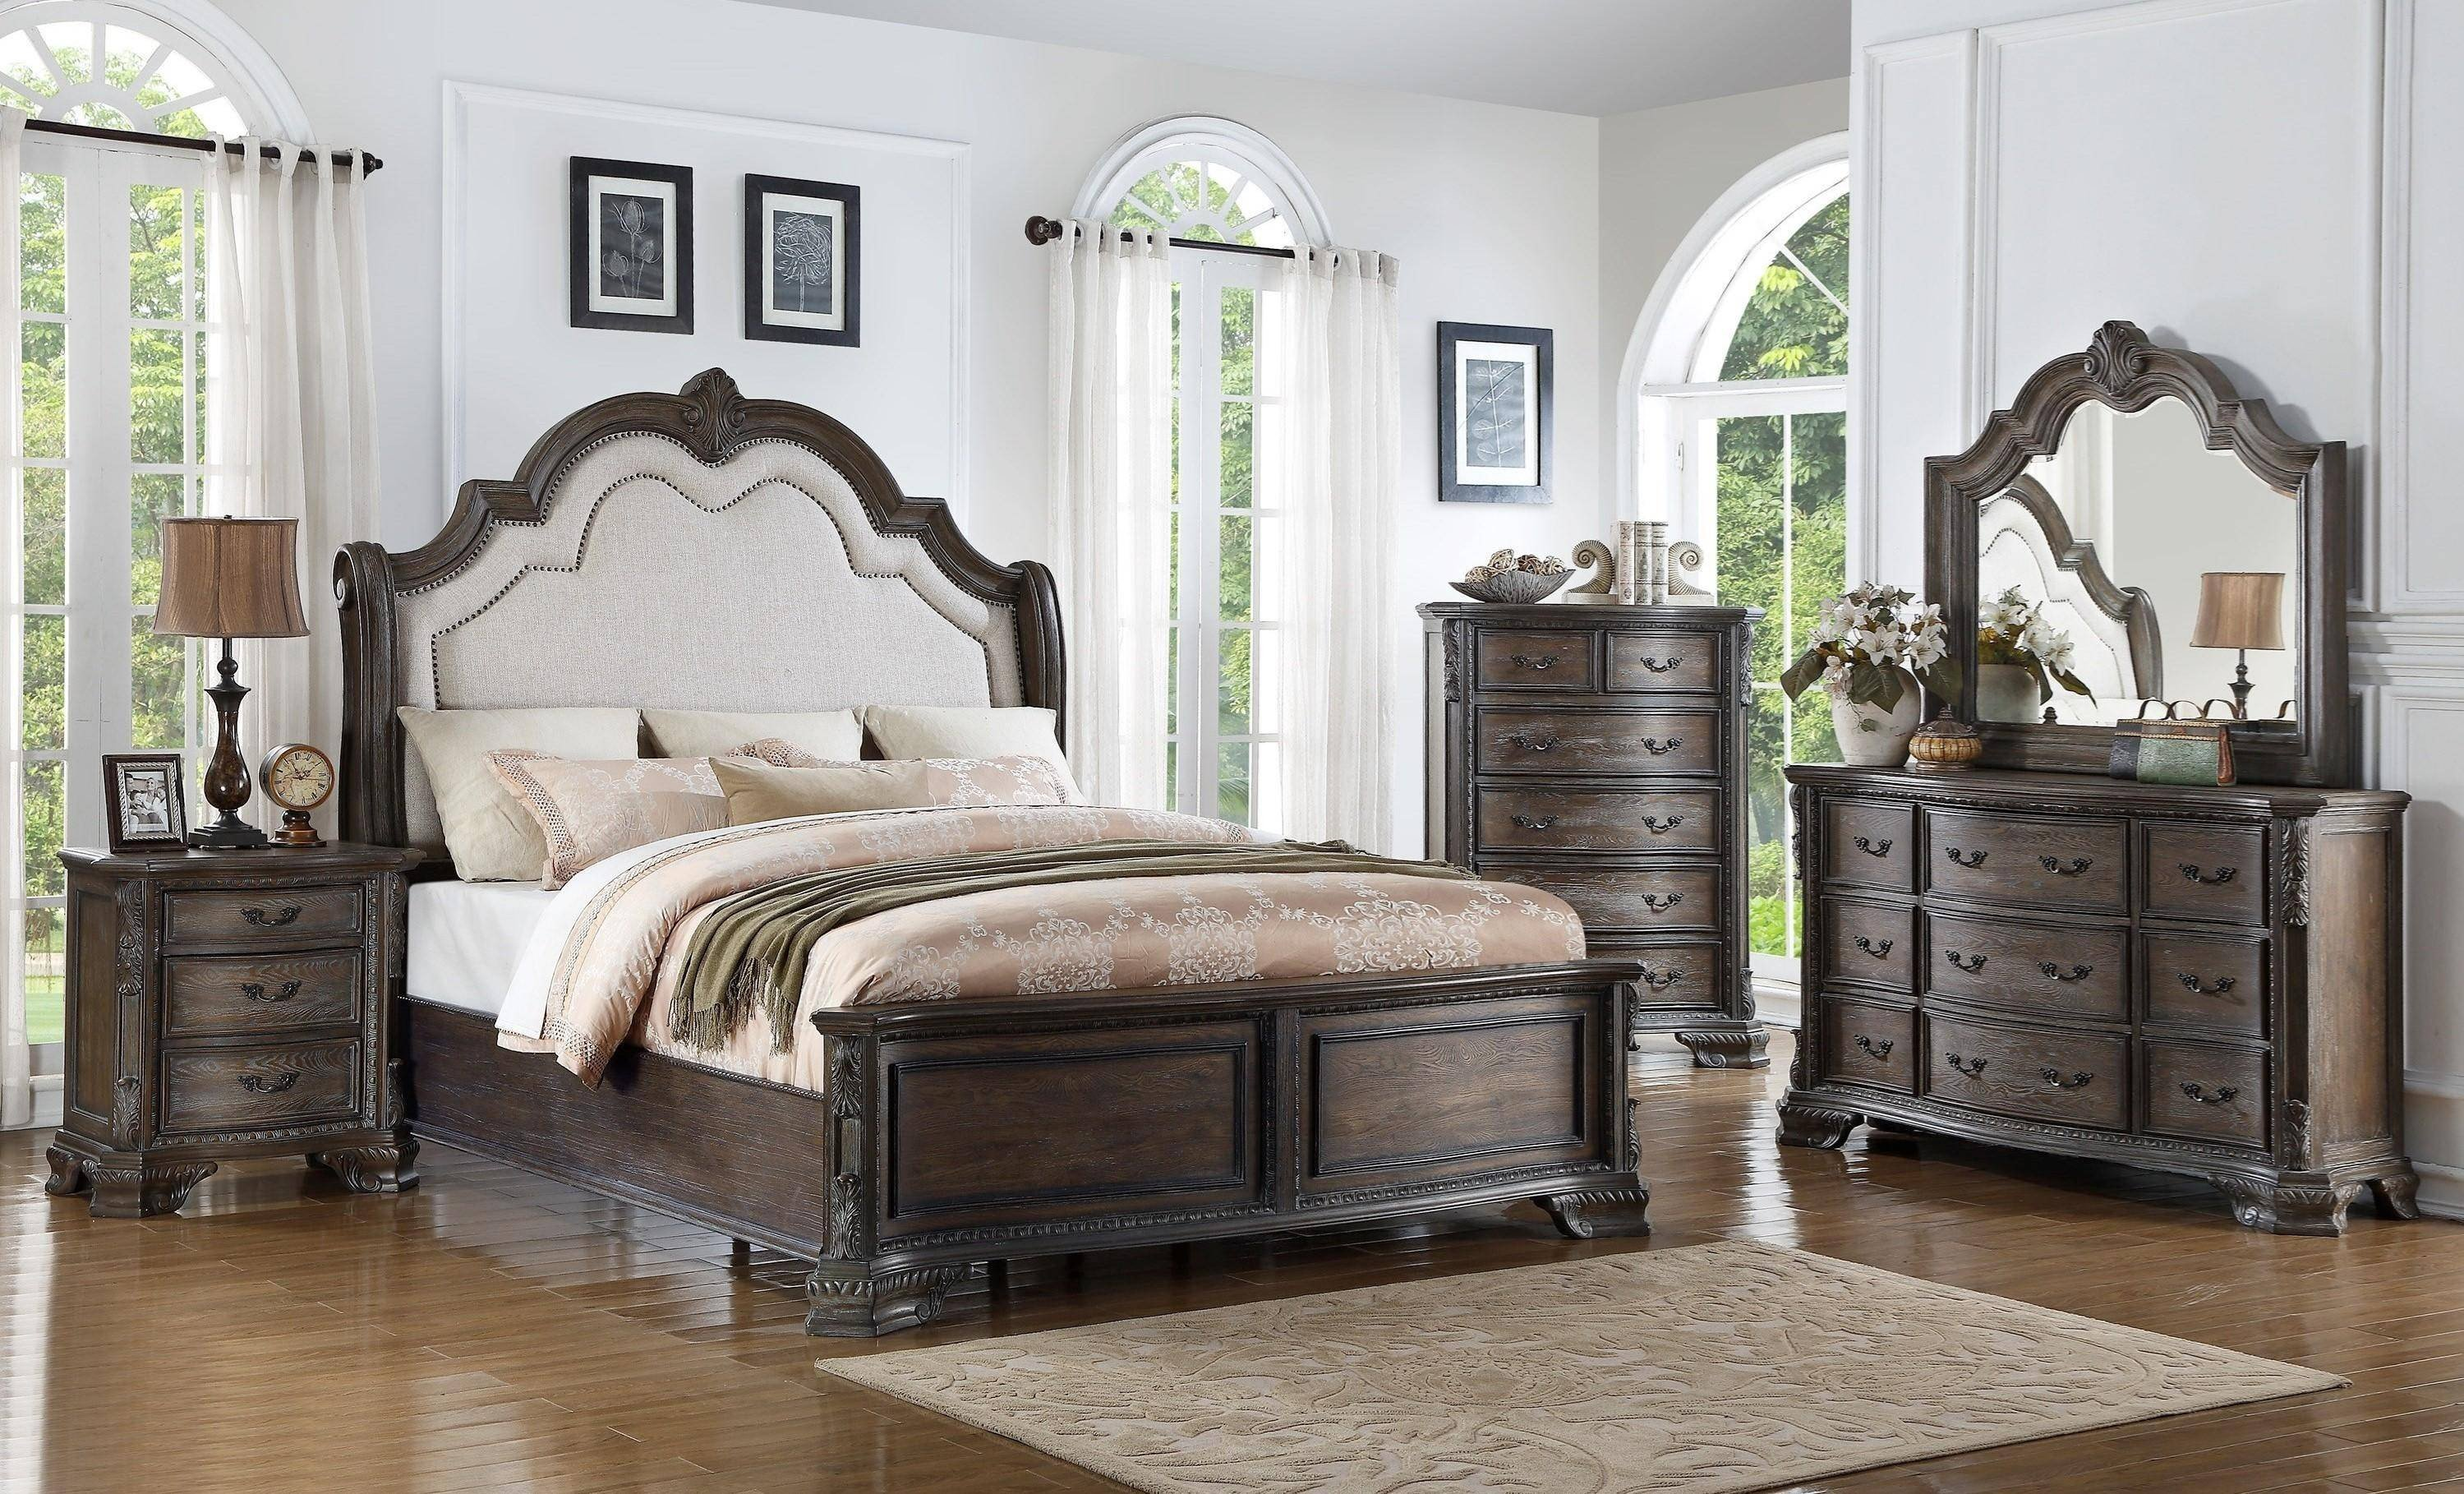 Bedroom Set California King Unique Crown Mark B1120 Sheffield Queen Panel Bed In Gray Fabric